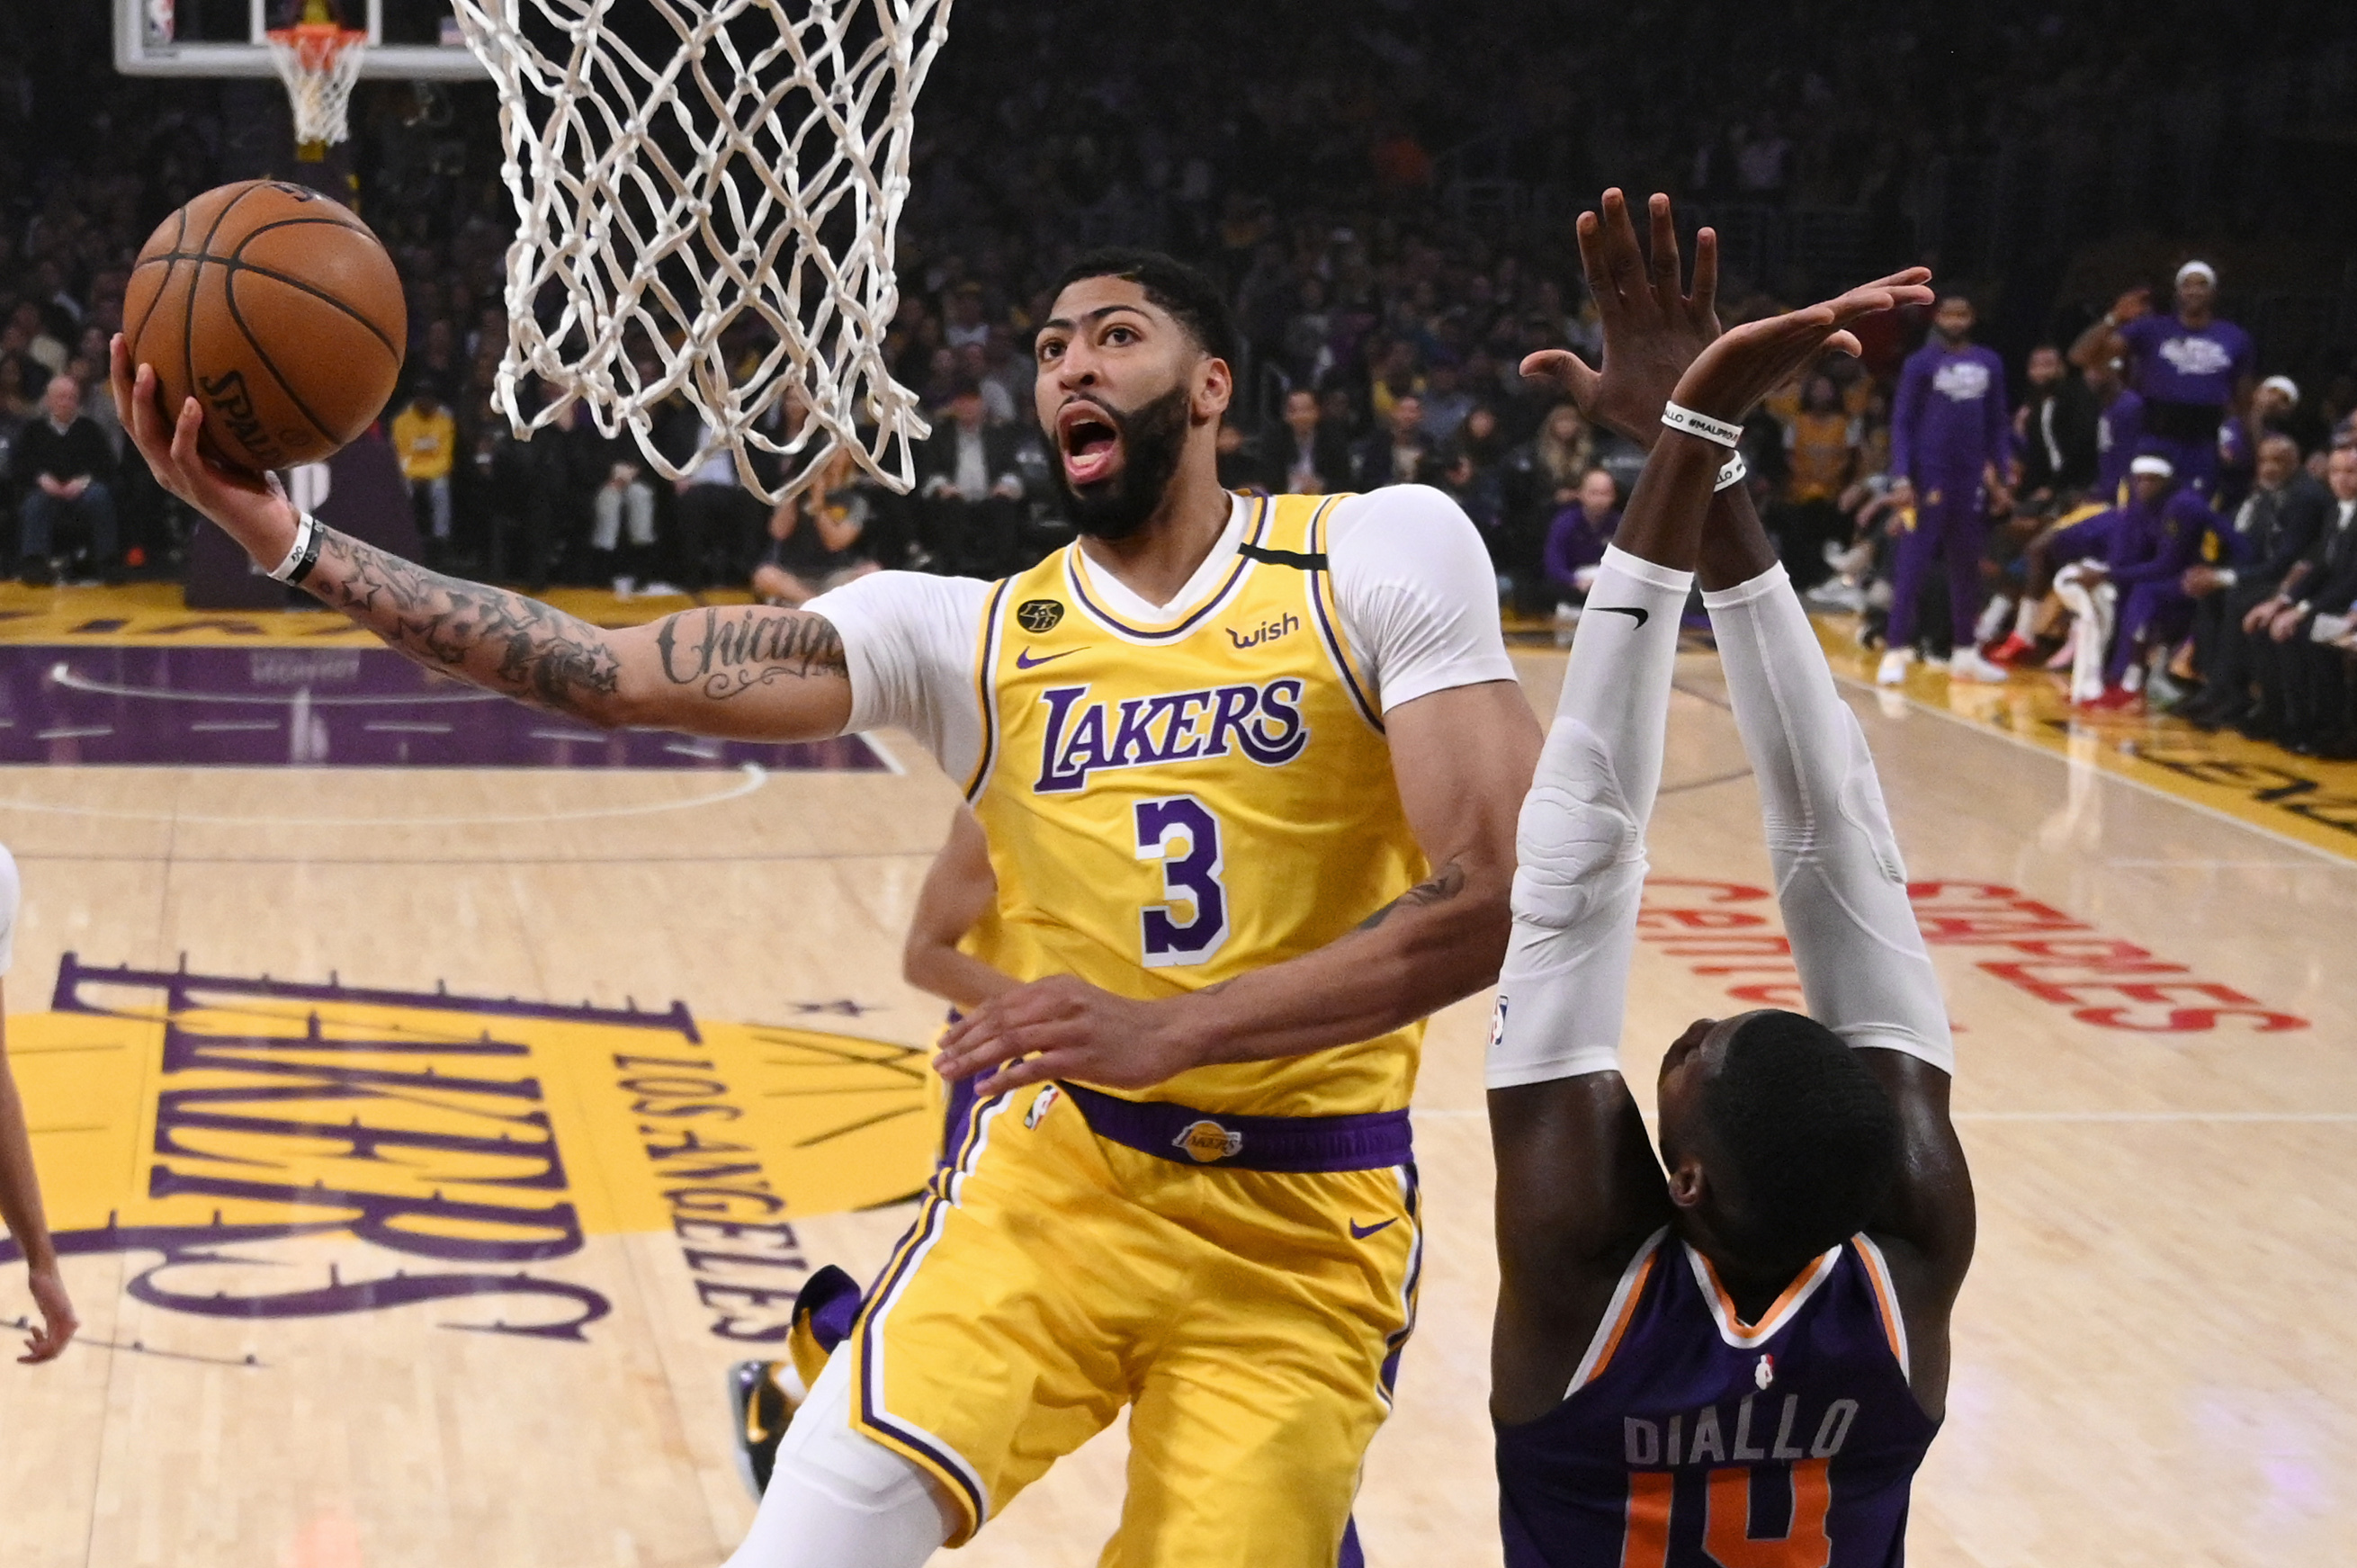 Rondo, Davis lead Lakers to 125-100 rout of Suns